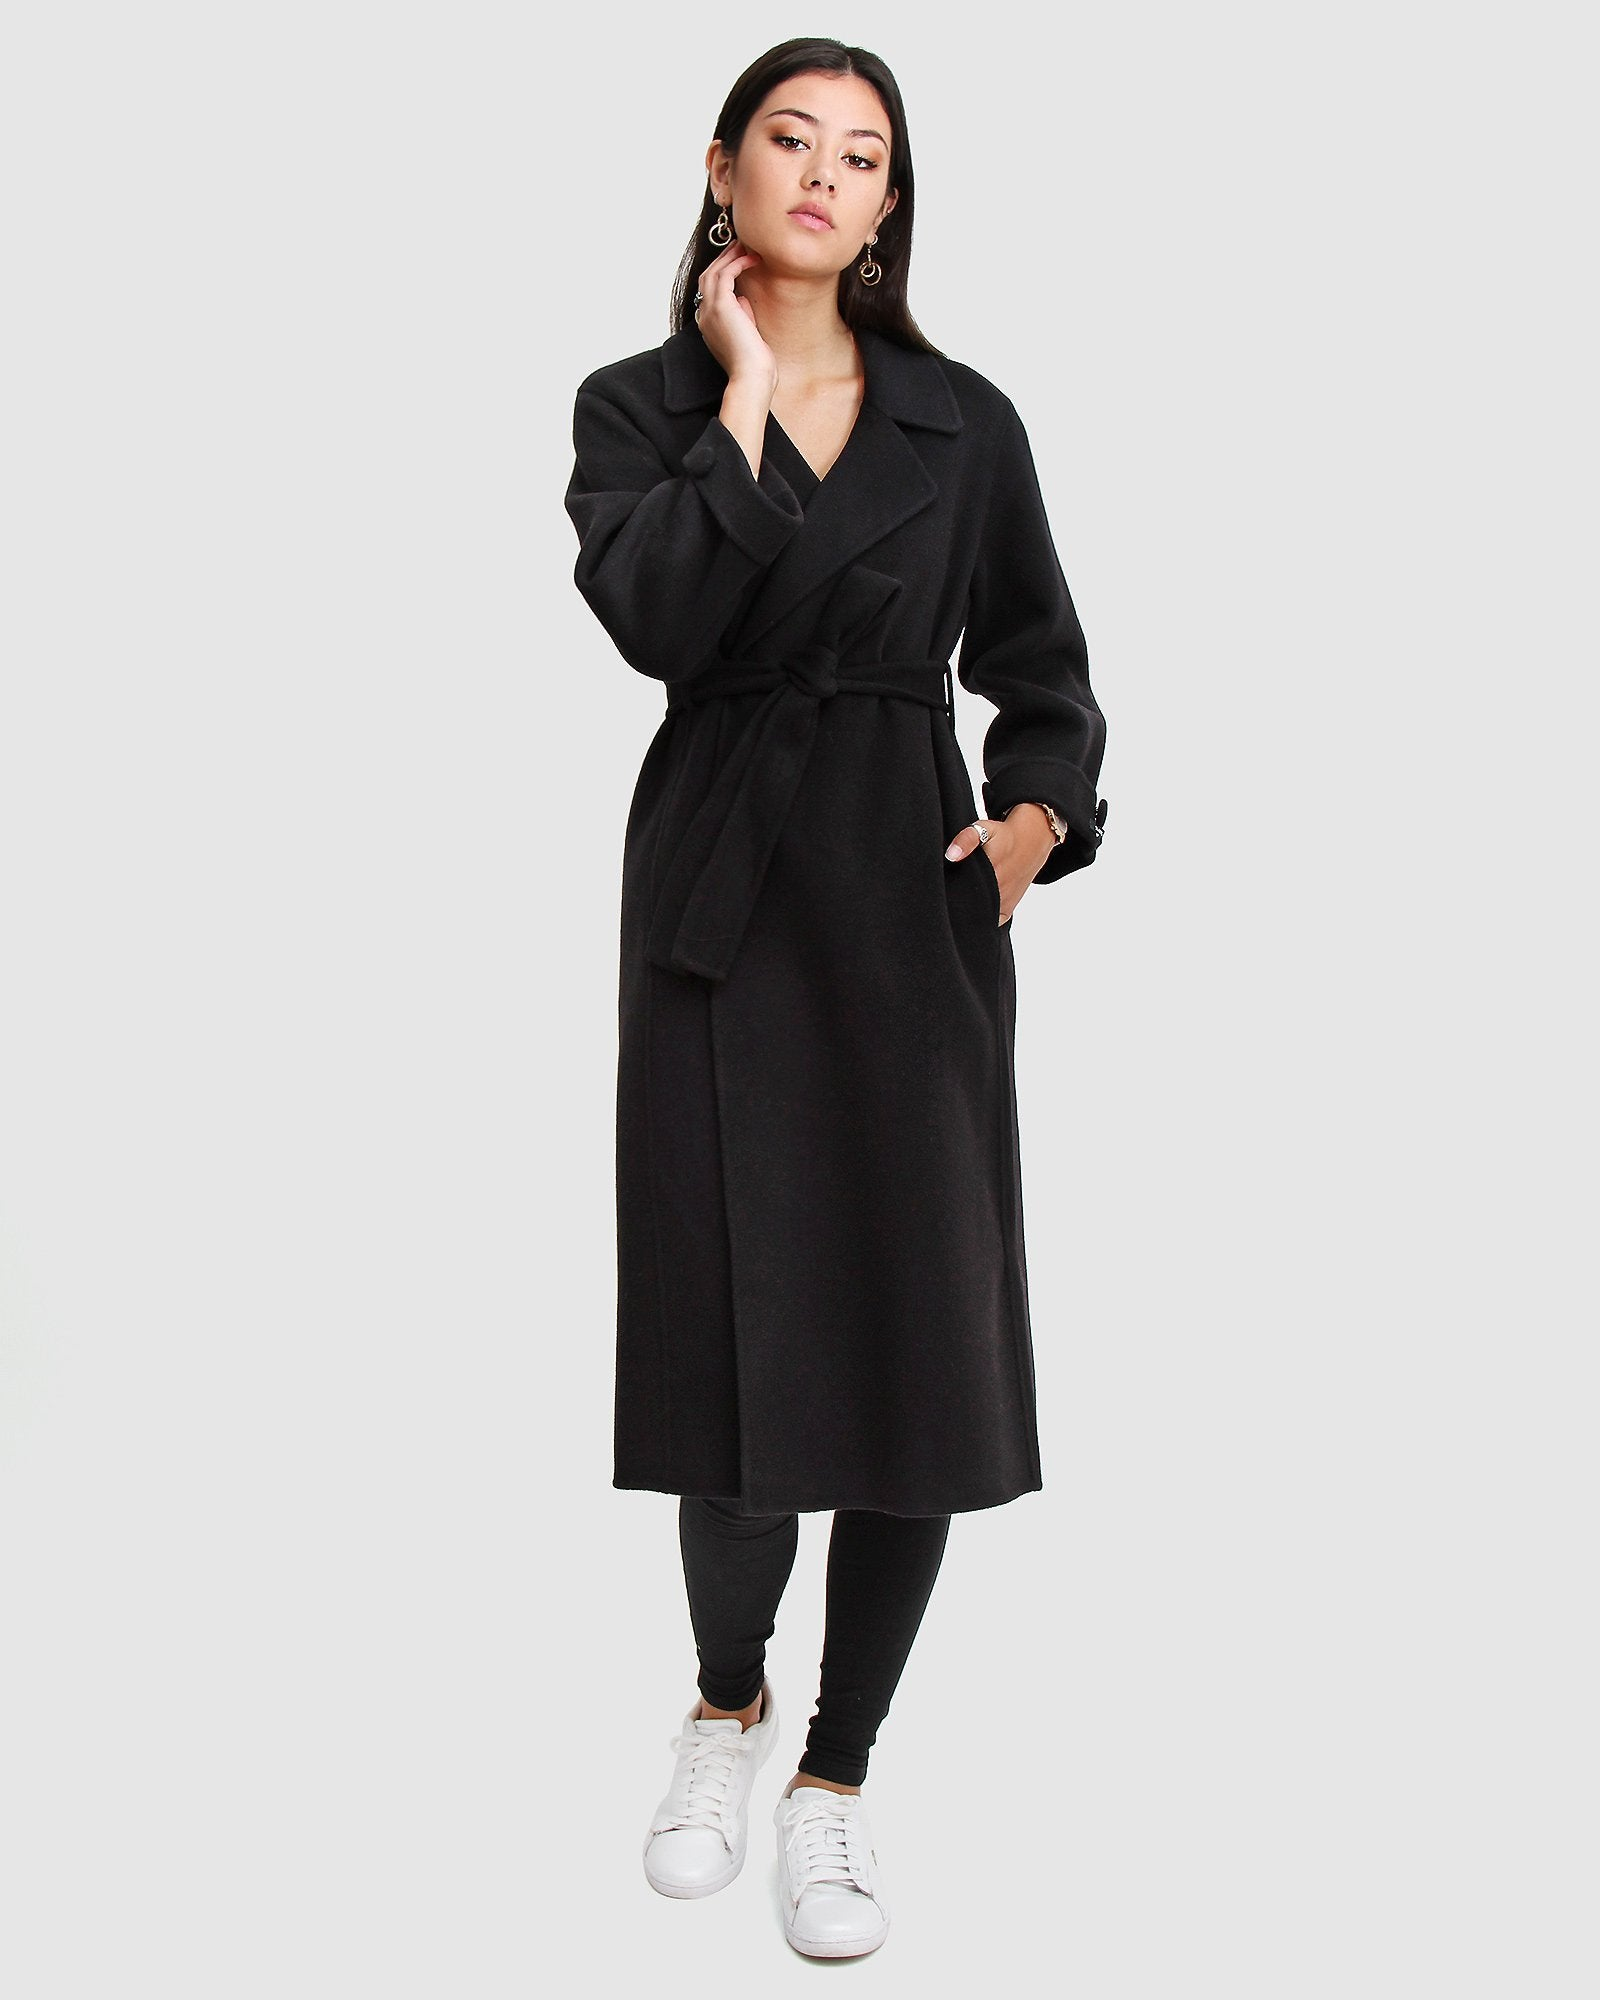 Oversized-wool-coat-black-belt-front.jpg